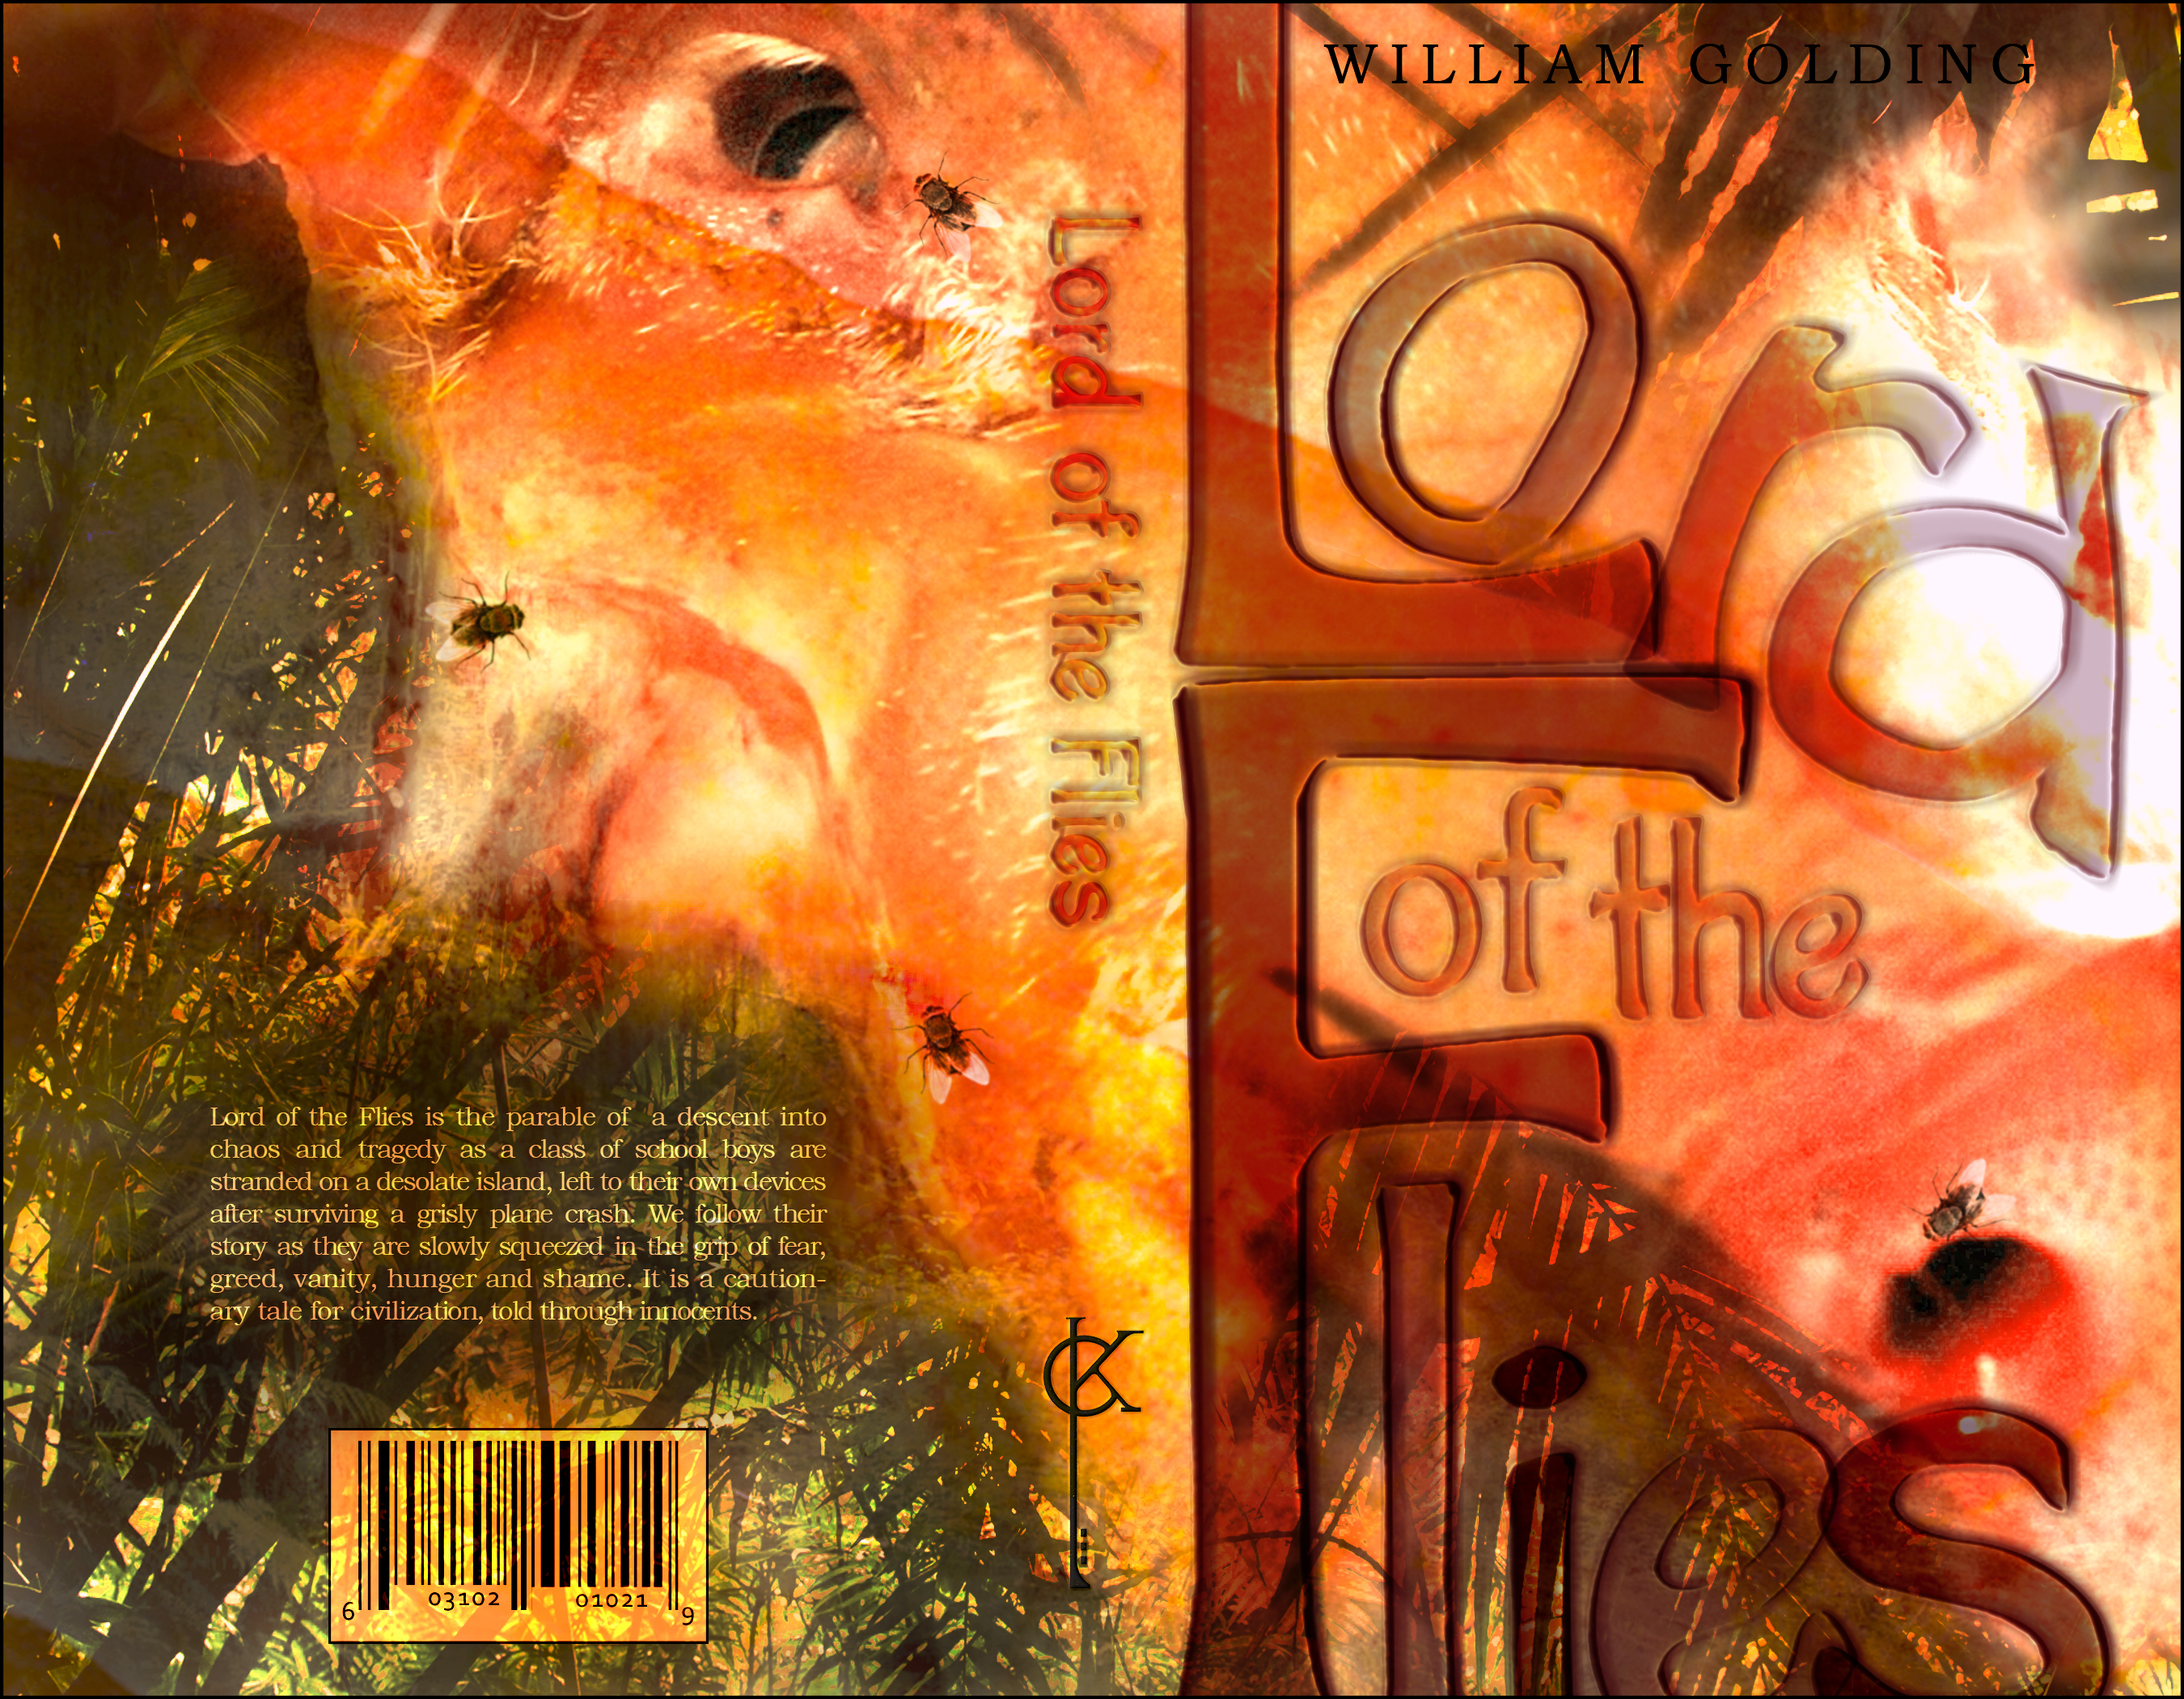 dystopian novel cover kathink lord of the flies beginnings of text wrap